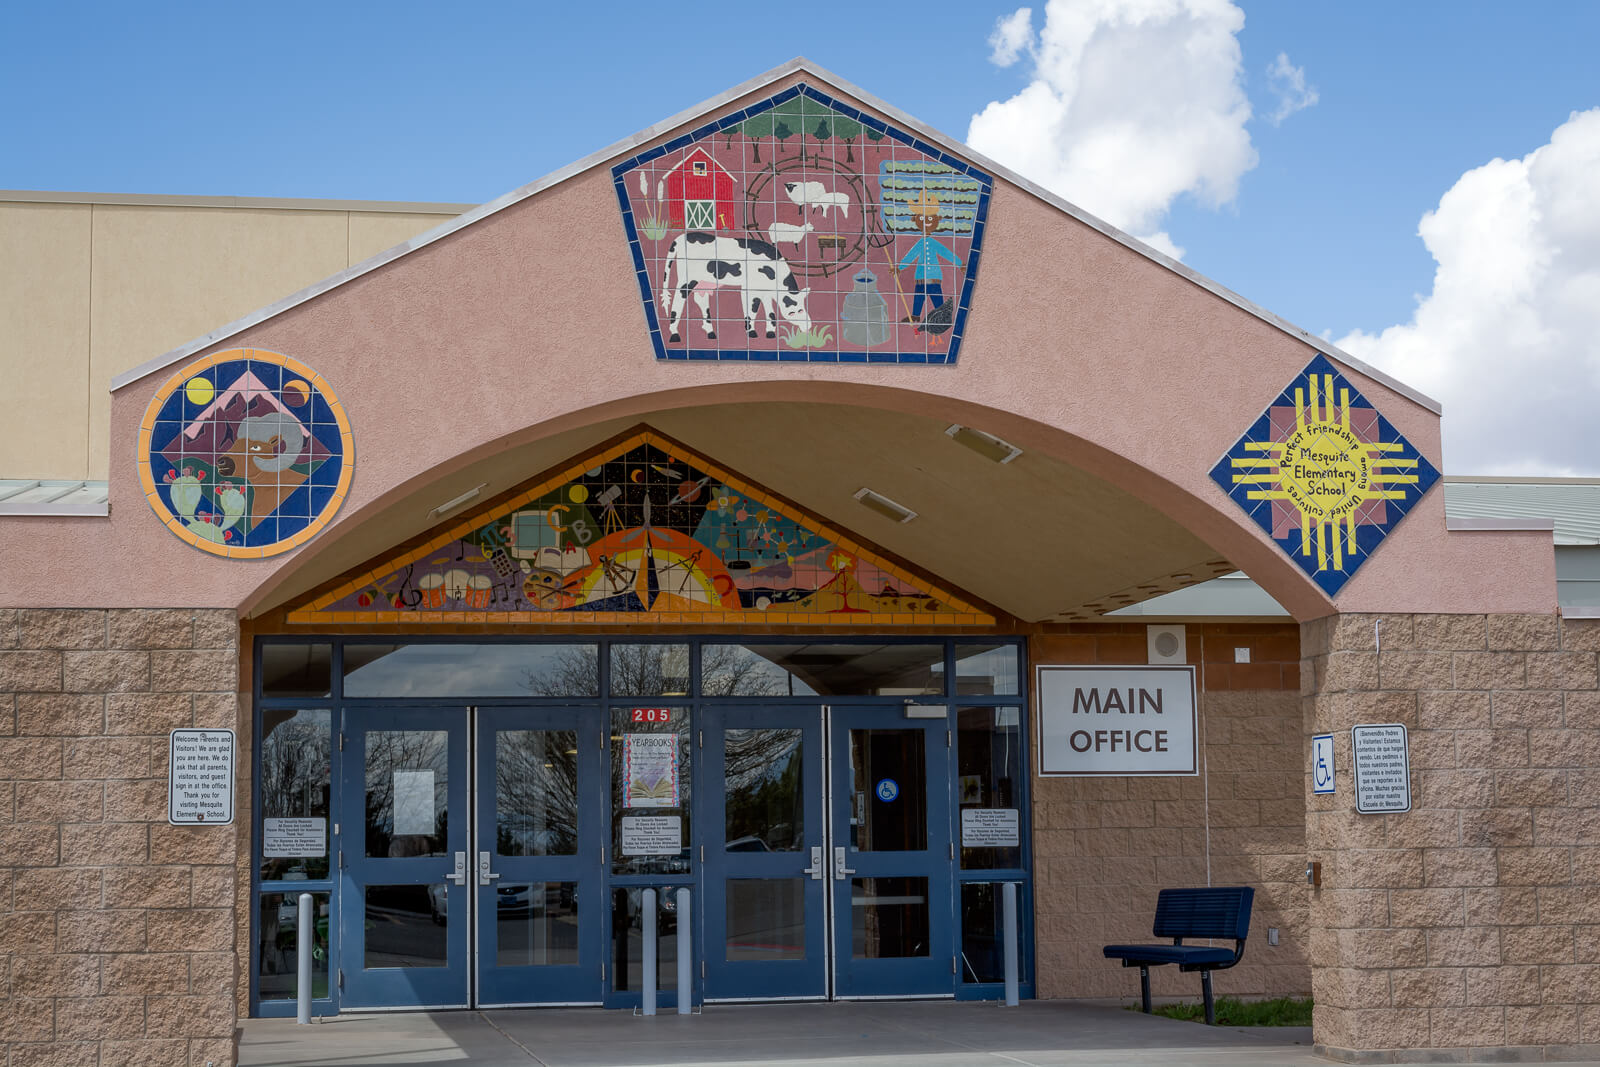 Mesquite Elementary Main Entrance